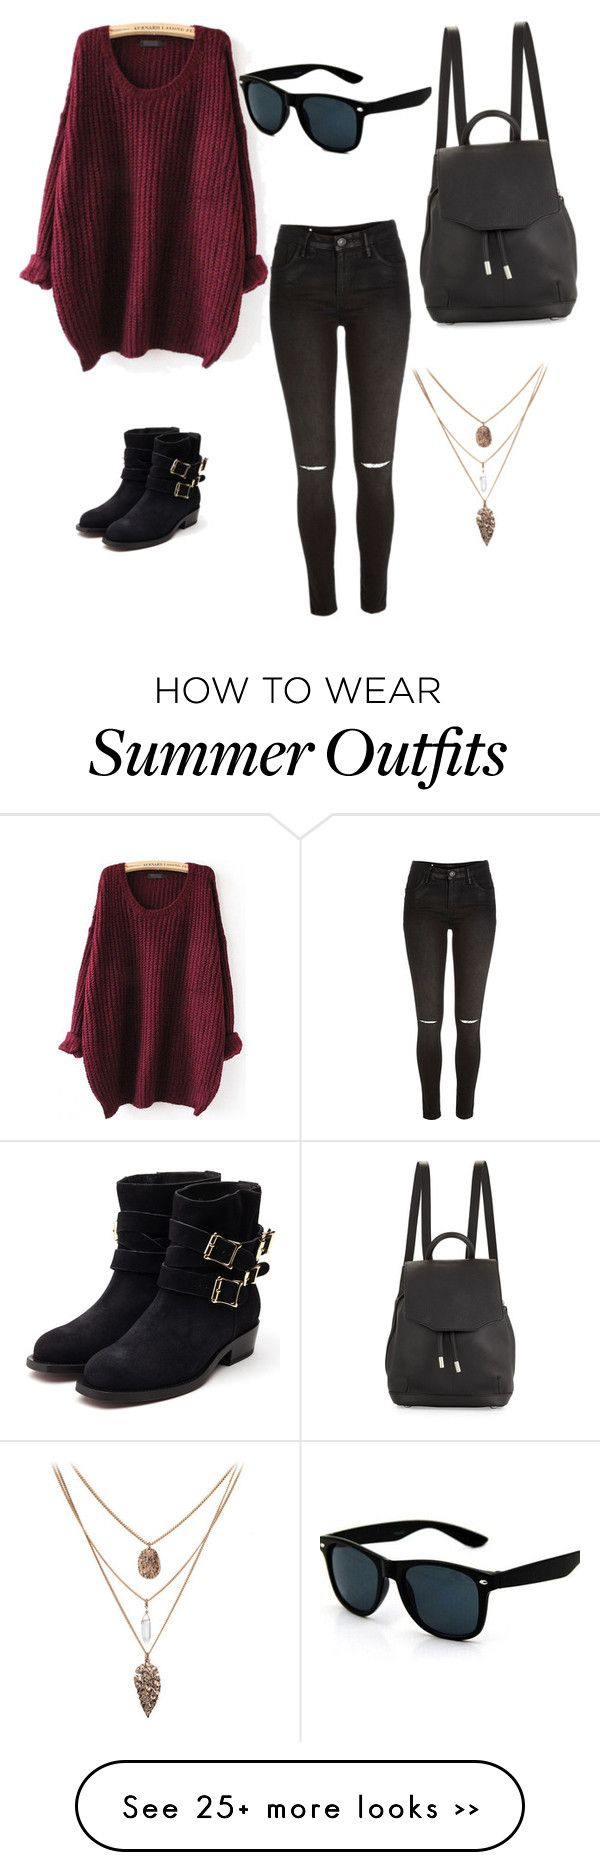 """Fall love"" by alexisloya on Polyvore featuring River Island, Rupert Sanderson and rag & bone"